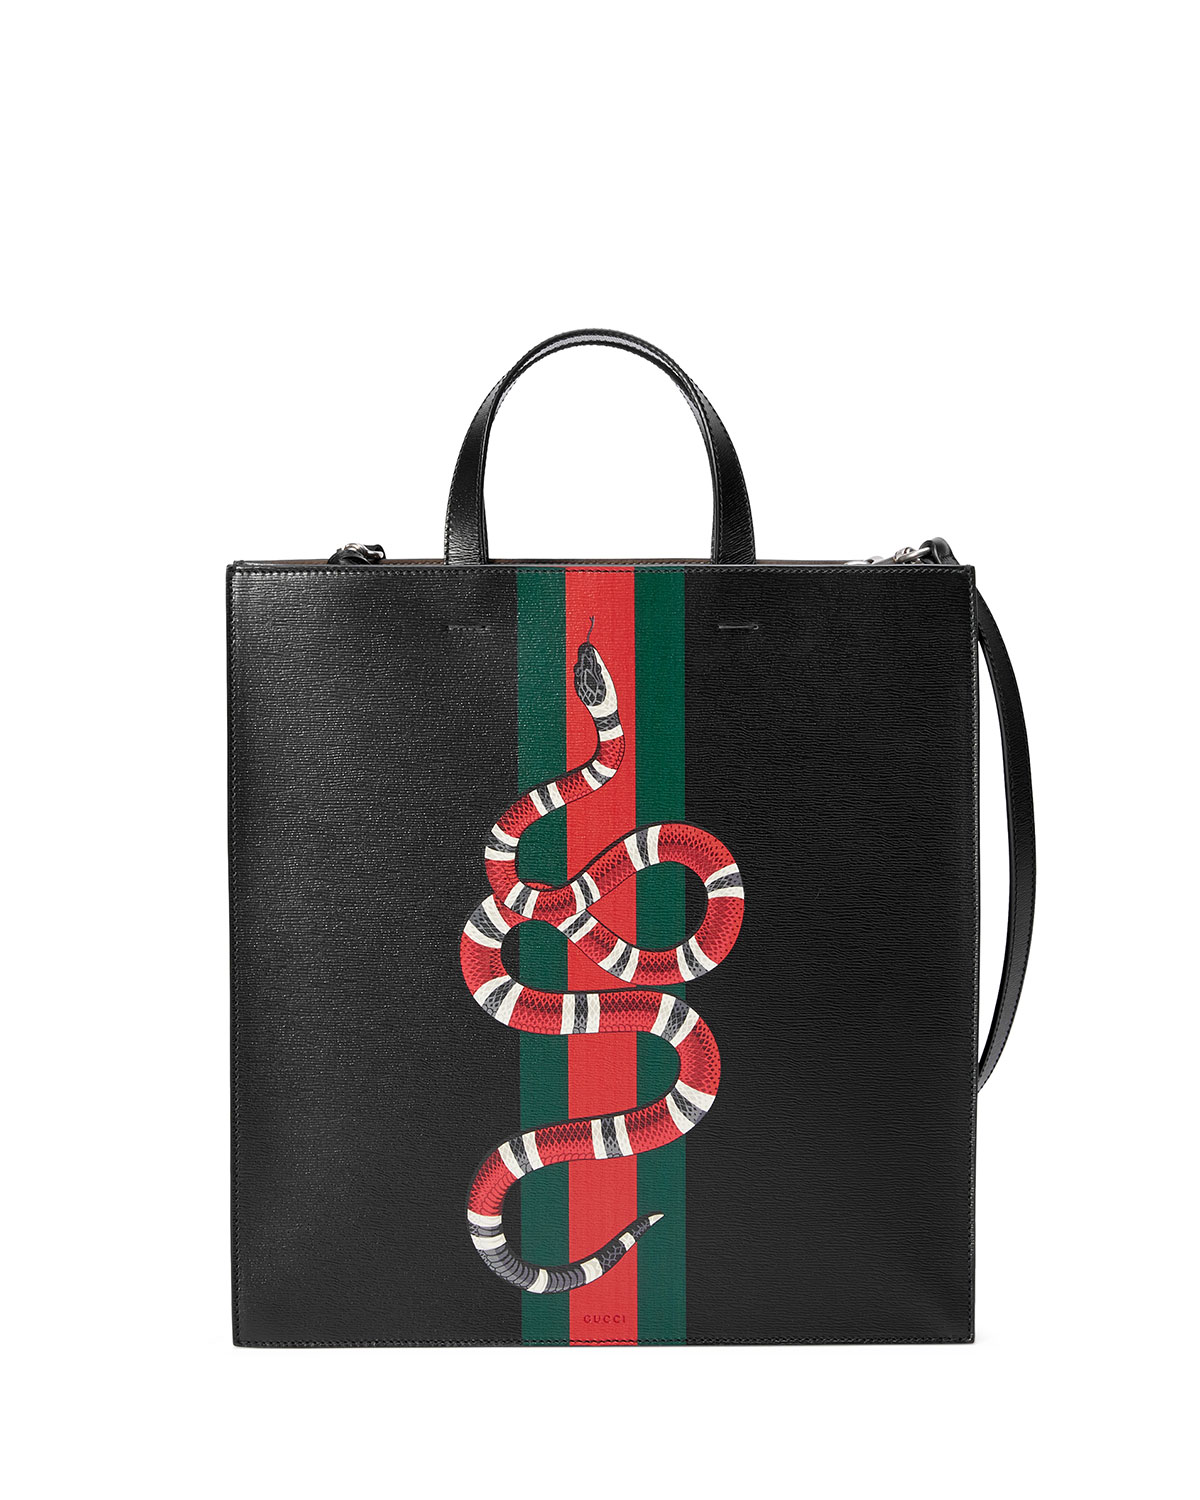 714e5c6a2ee6 Gucci Web & Snake Leather Tote Bag | Neiman Marcus